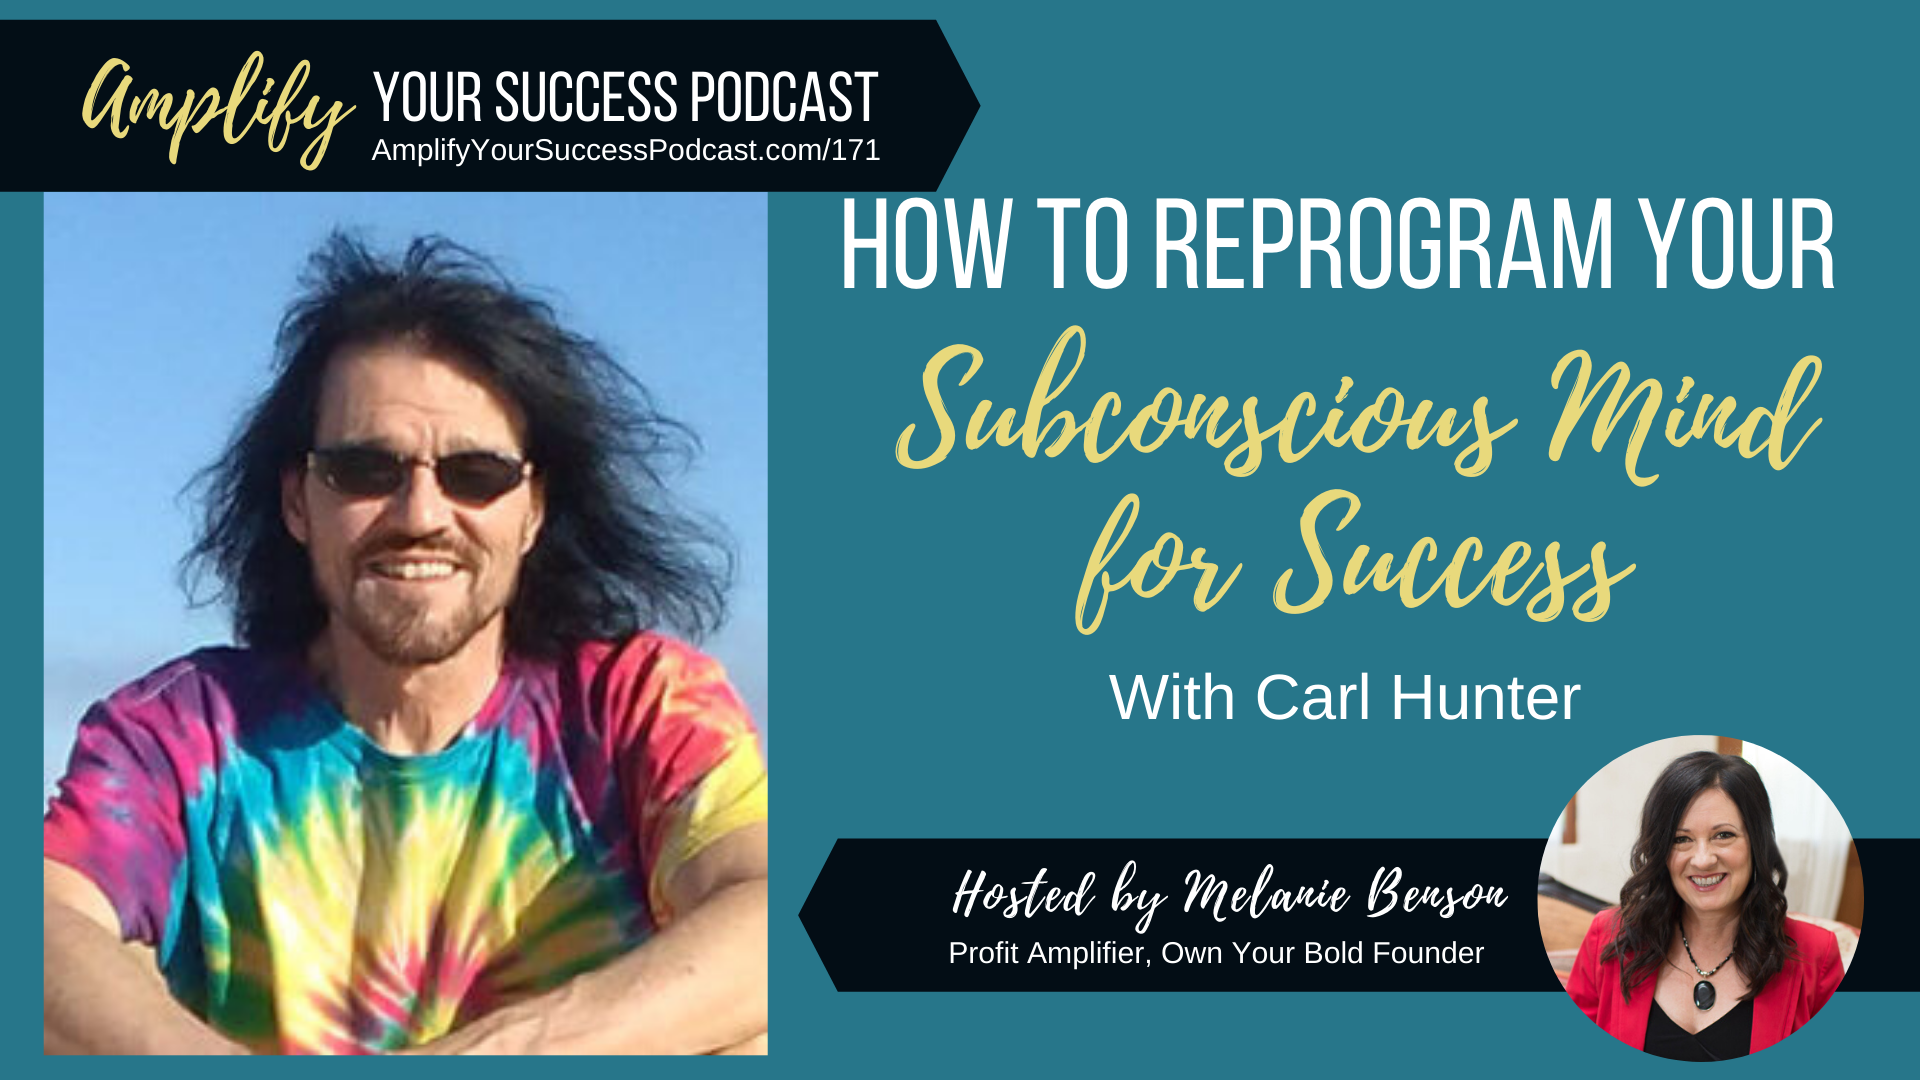 How to reprogram your subconscious mind for success with Carl Hunter on Amplify Your Success Podcast Episode 171 with Melanie Benson